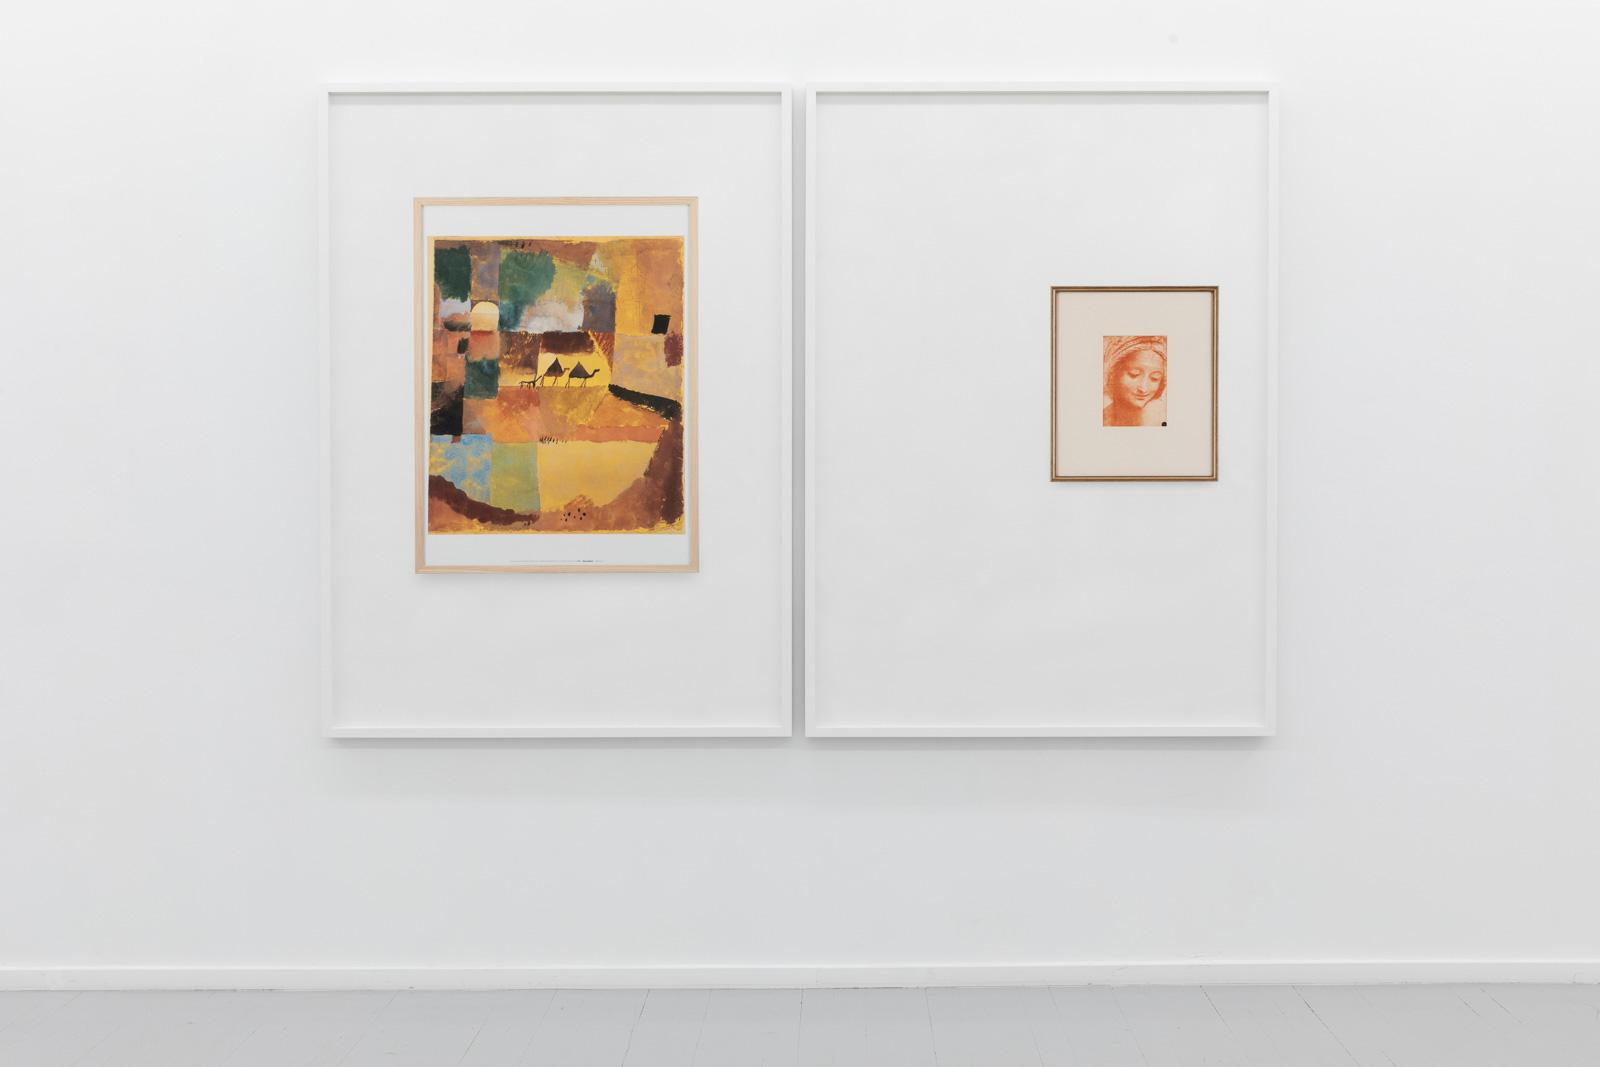 Waiting Room of a Psychologist (Paul Klee, With Two Dromedaries and One Donkey, 1914/19), 2019Pigment print on acid free cotton paper in artist's frame, 144 x 104 x 4 cm. Ed. 5 + 1 APWaiting Room of a Psychologist (Leonardo da Vinci, Study for the face of Saint Anne, 1500), 2019Pigment print on acid free cotton paper in artist's frame, 144 x 104 x 4 cm. Ed. 5 + 1 AP